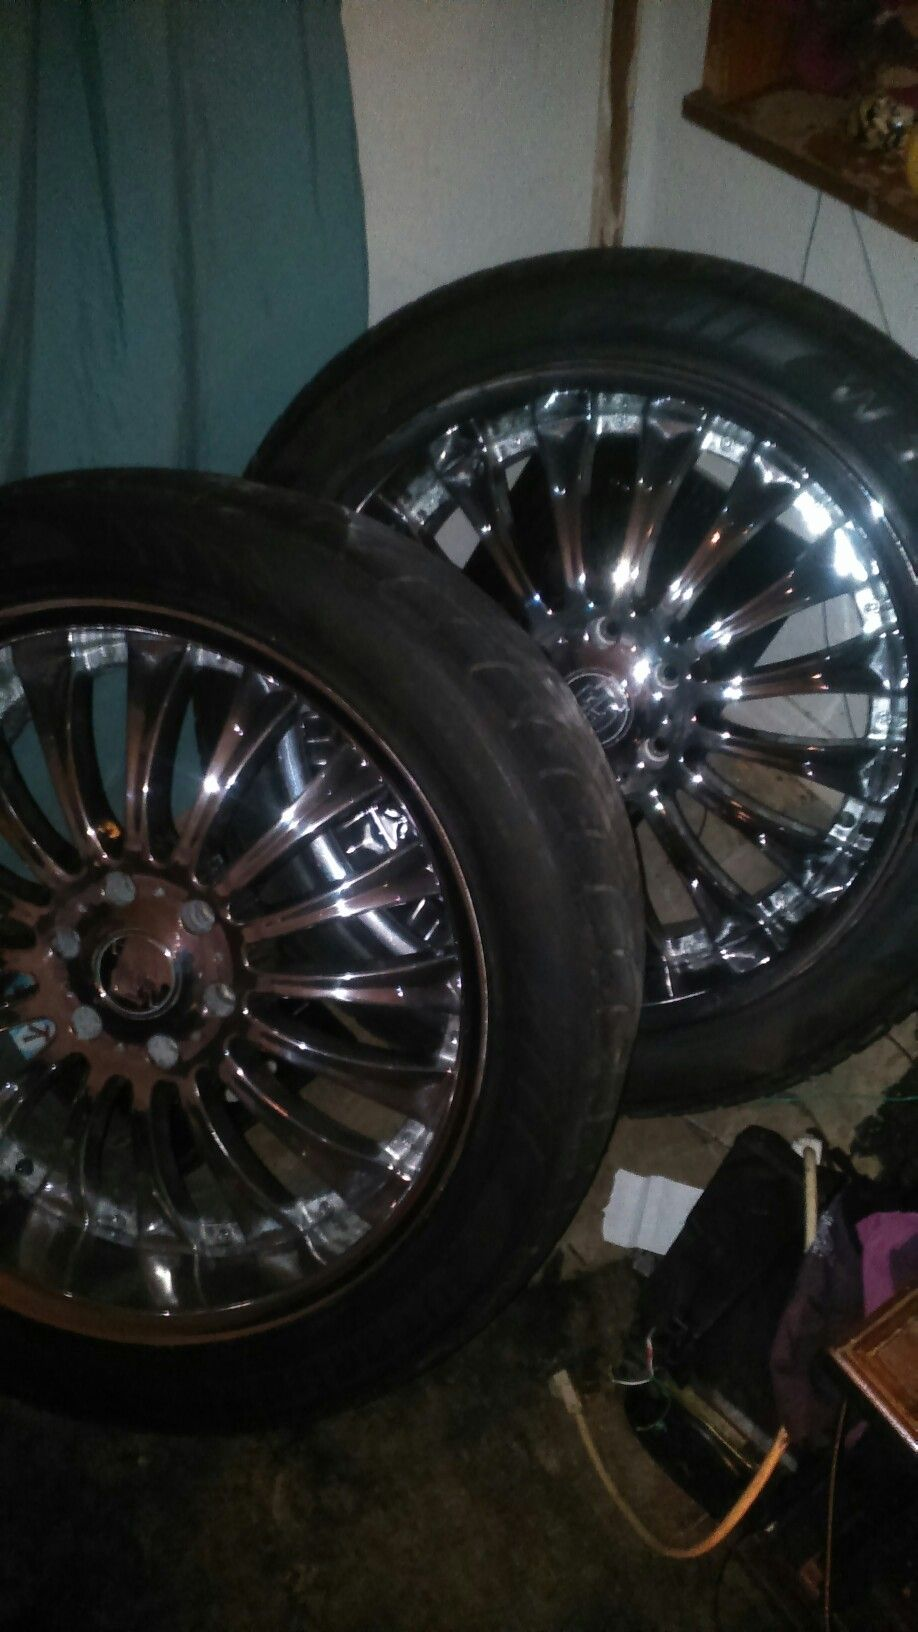 22 inch rims 5 set for 600 or negotiable | rims 22"|918|1632|?|6dde4a713c6c36344f228d472b56de06|False|UNLIKELY|0.35806936025619507